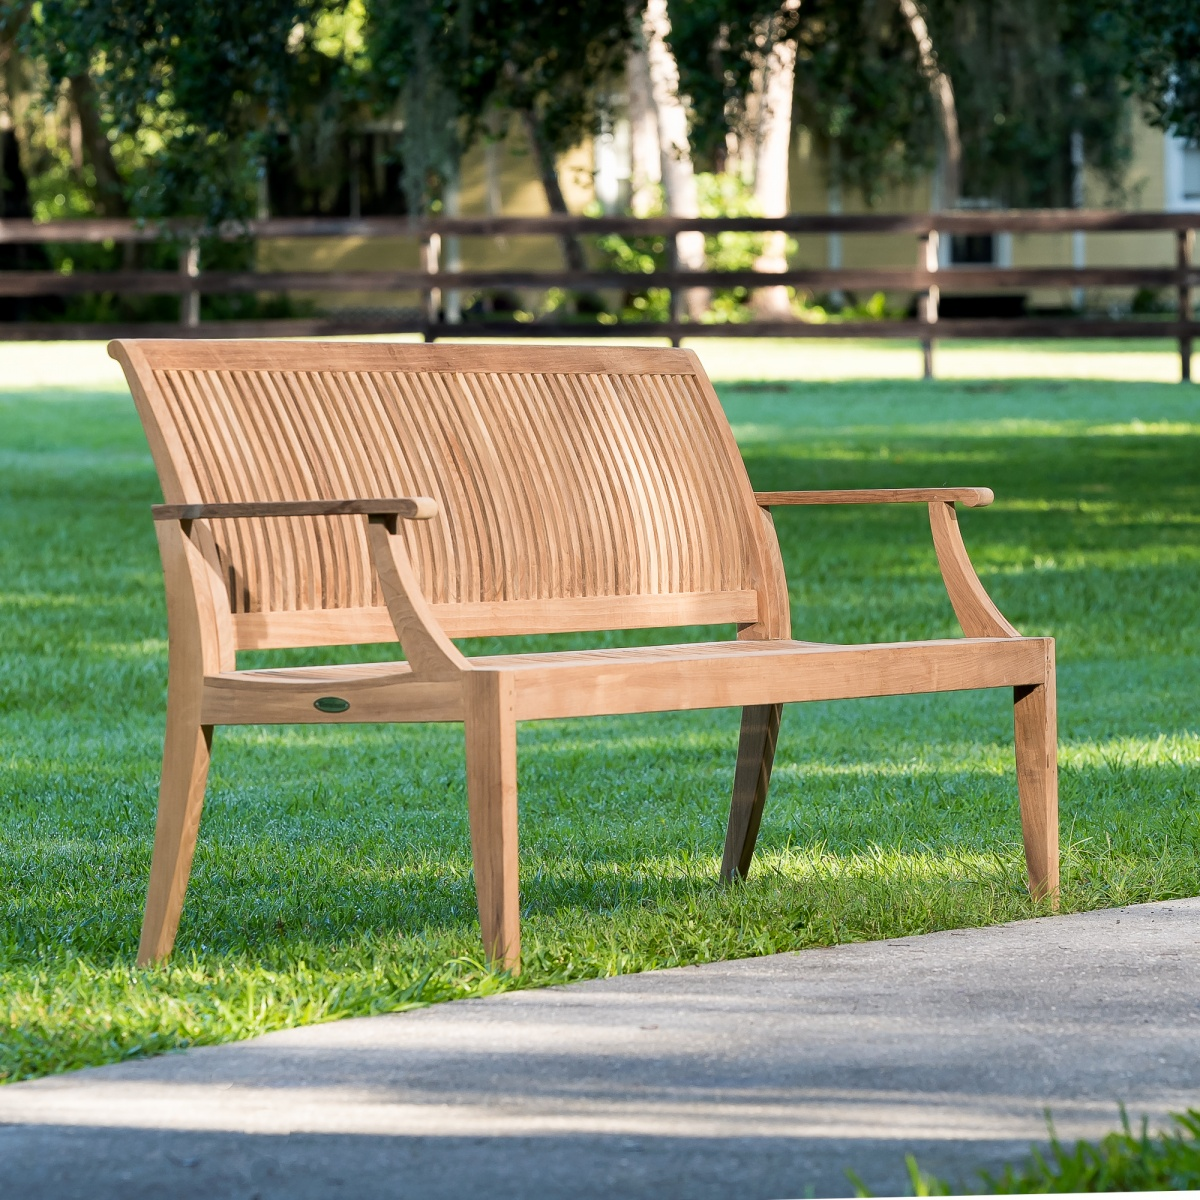 Laguna teak garden bench 6 ft westminster teak outdoor for Teak outdoor furniture